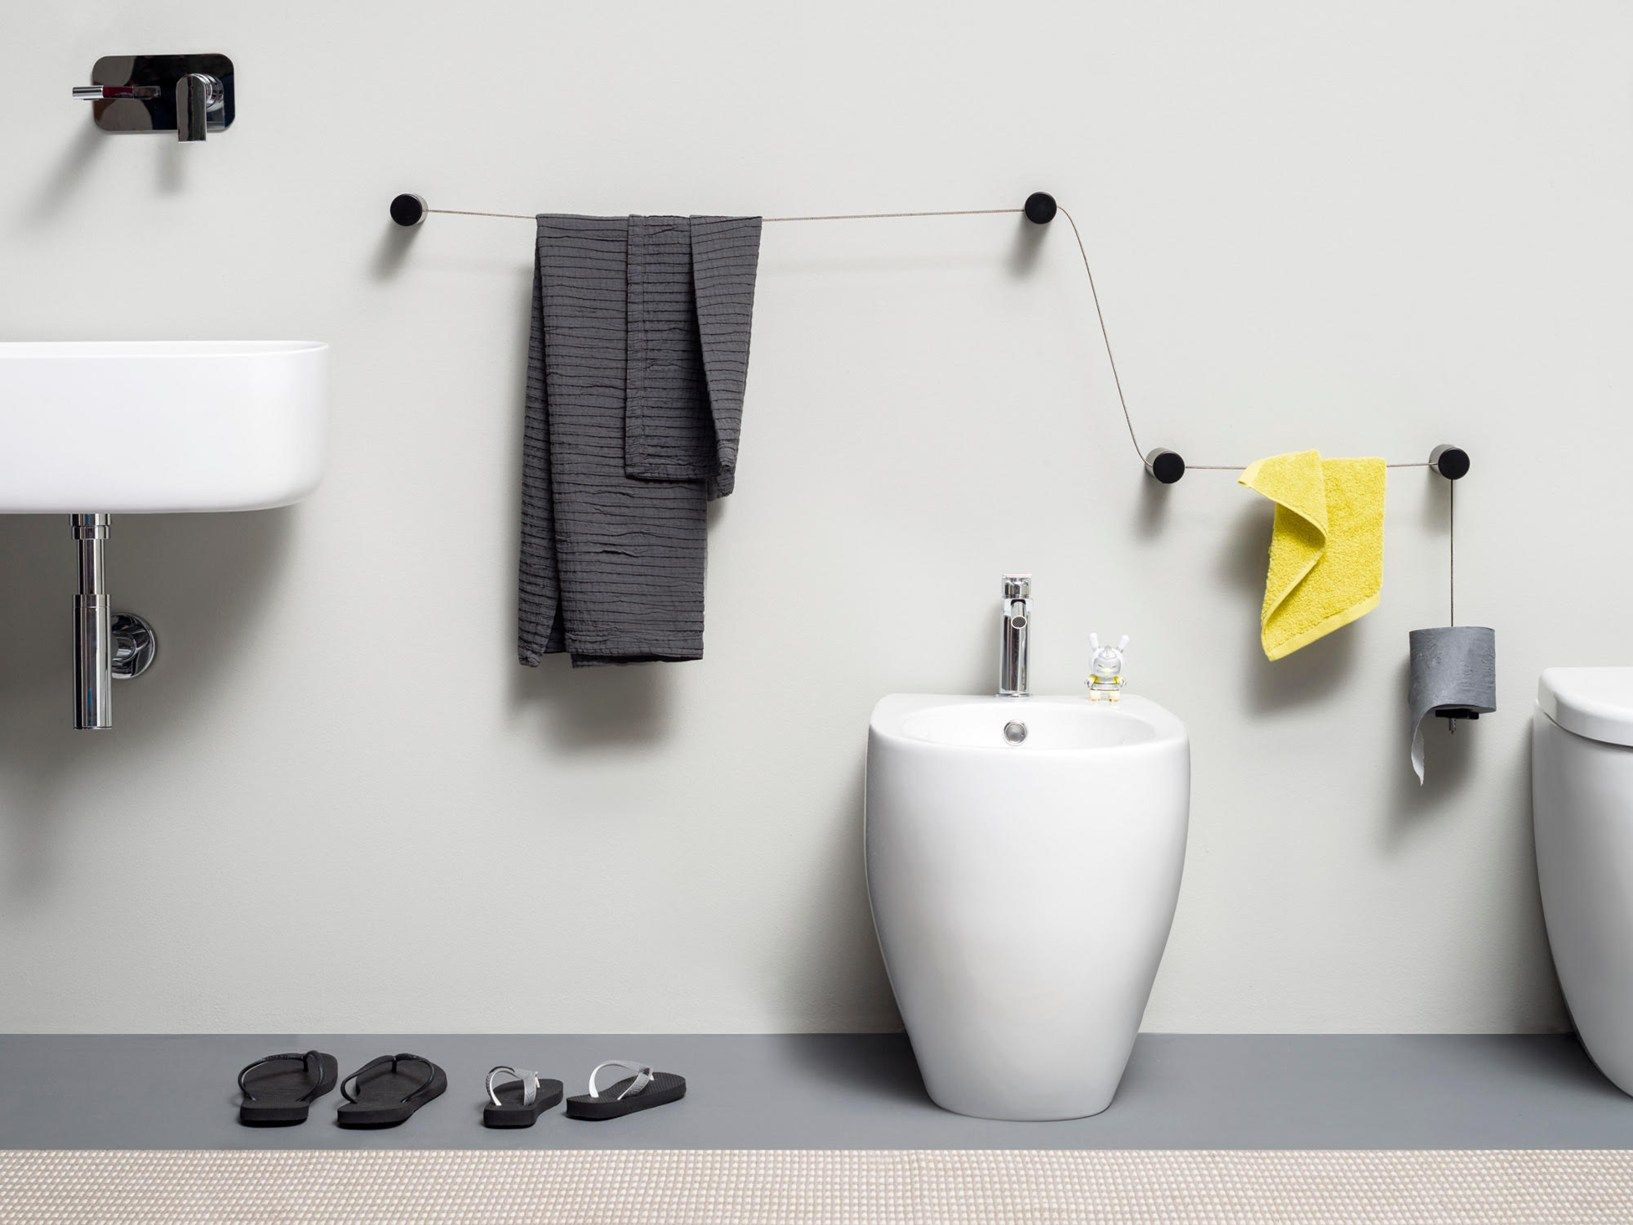 New bathroom accessories designed by Monica Graffeo